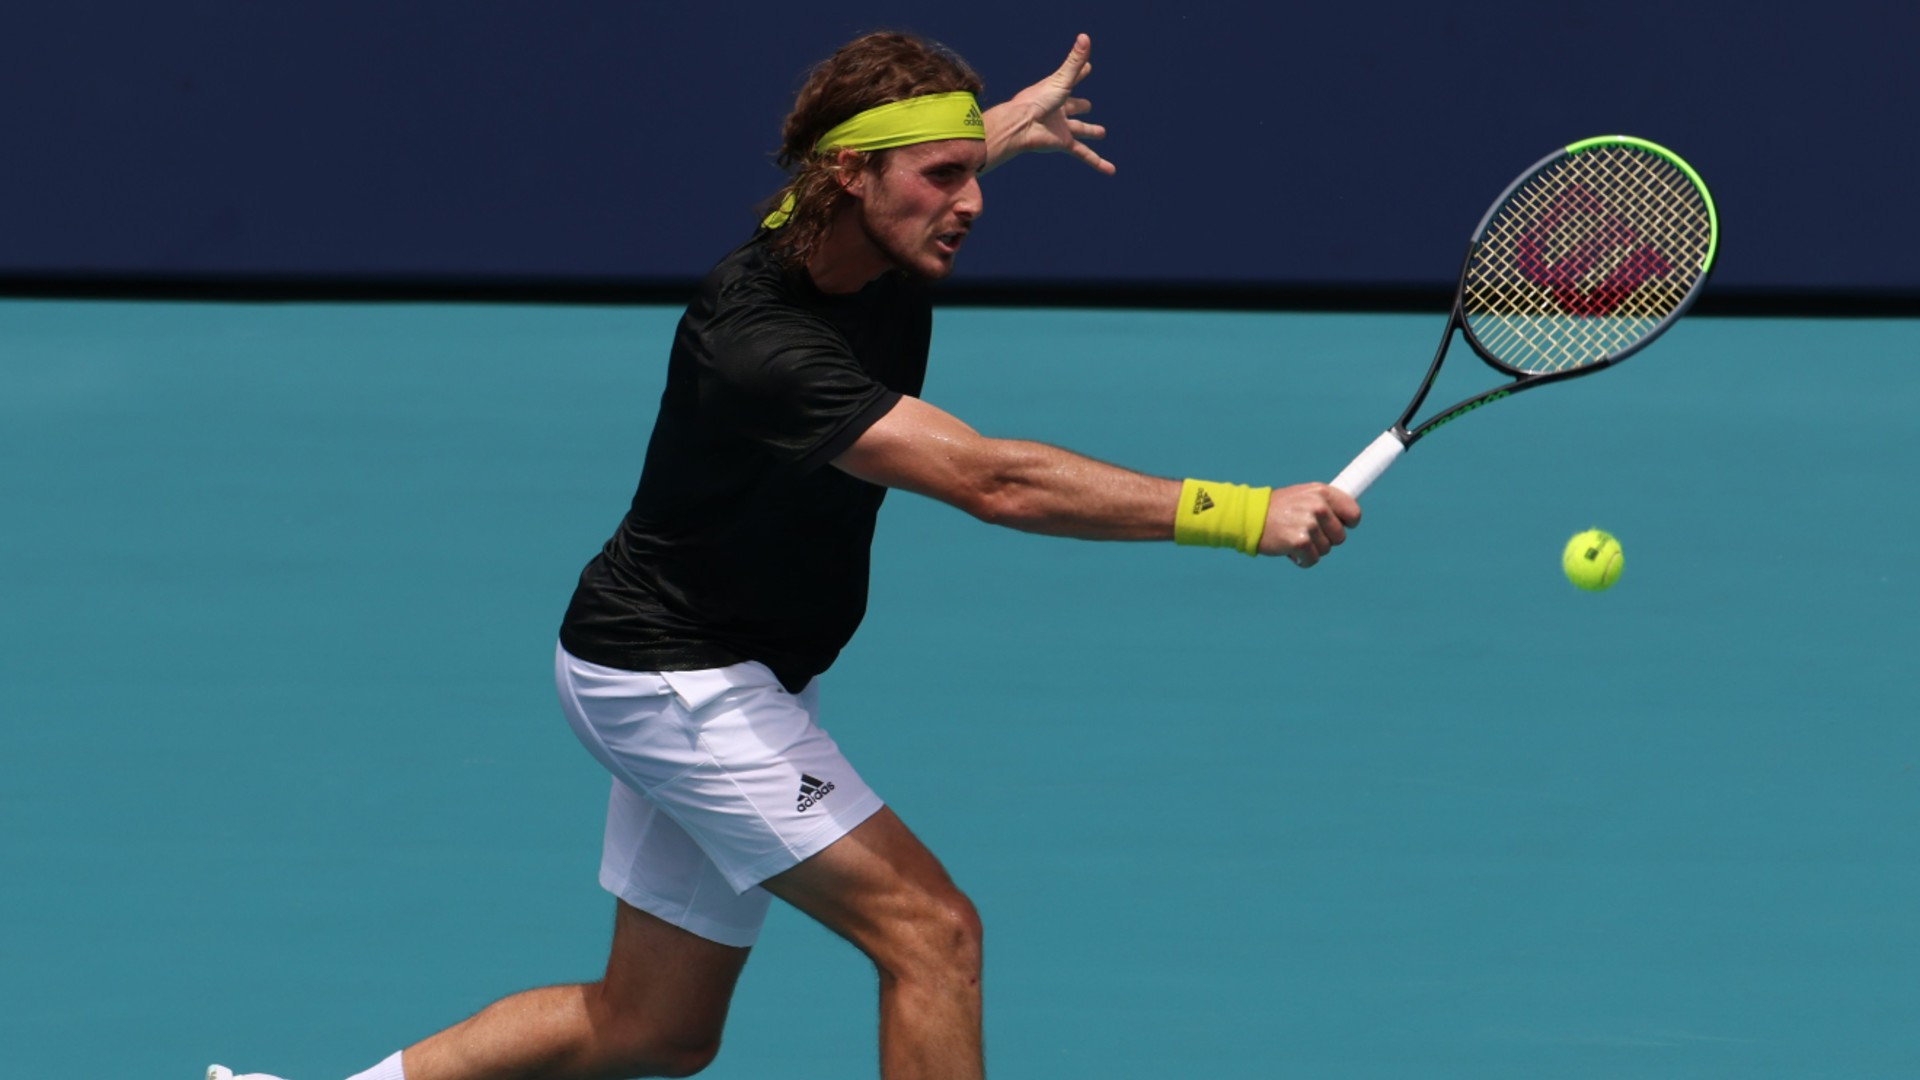 Tsitsipas tops Nishikori as last 16 beckons in Miami, Rublev wins again but Karatsev suffers rare loss